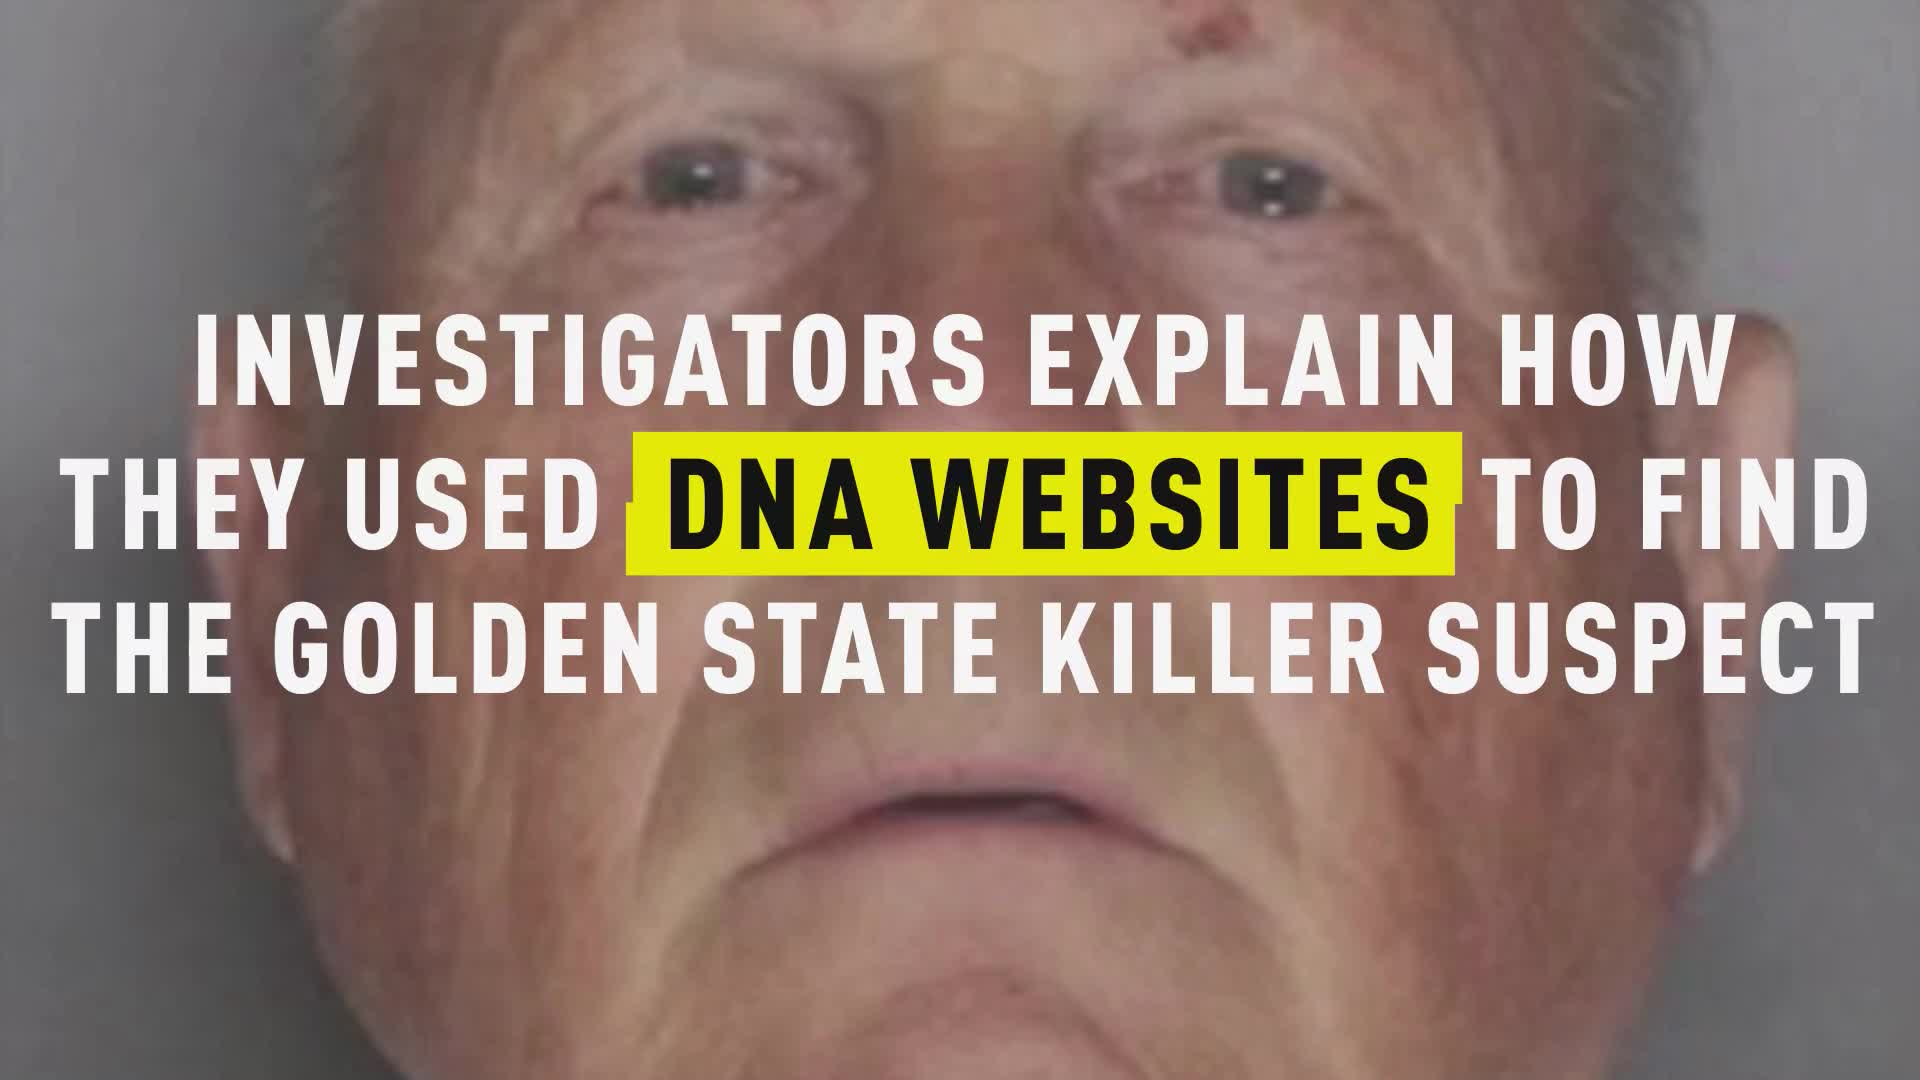 Investigators Explain How DNA Was Used to Find the Golden State Killer Suspect